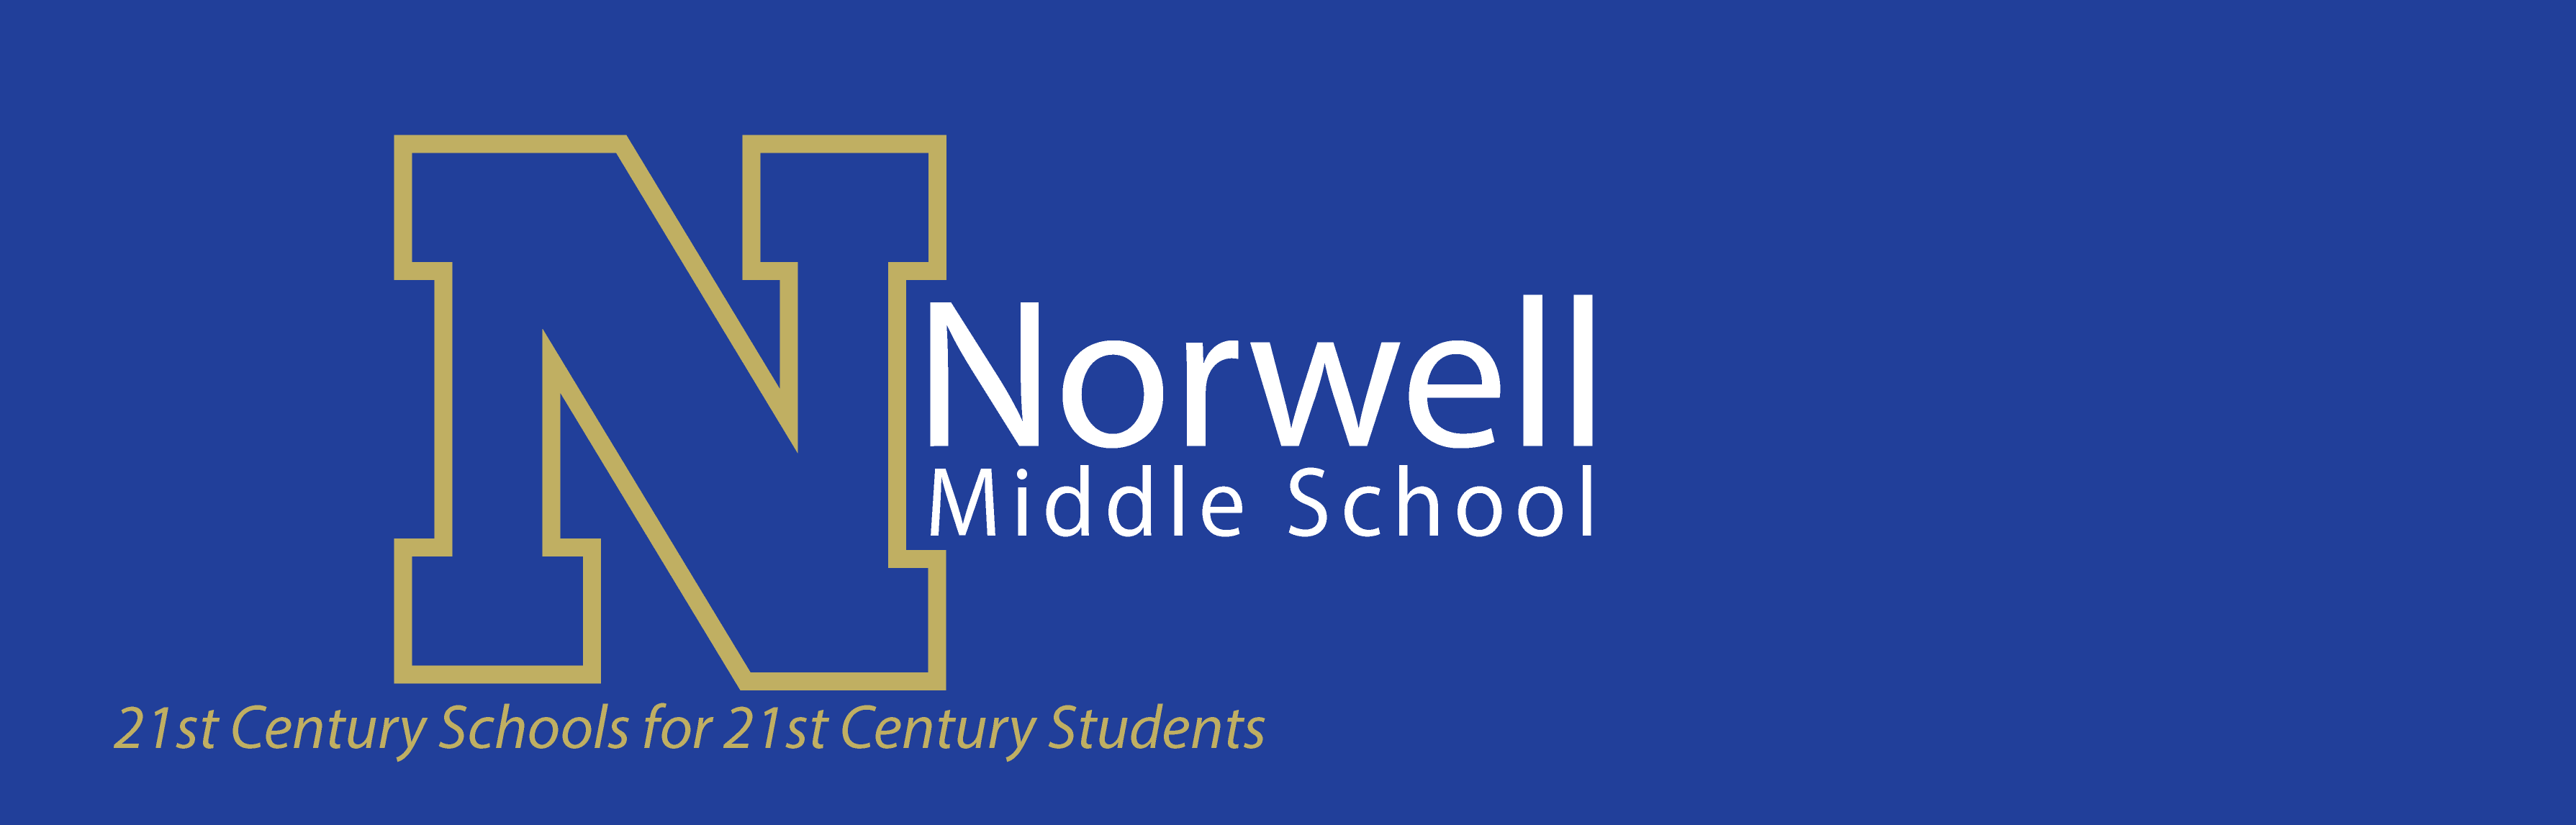 Norwell Middle School Overview